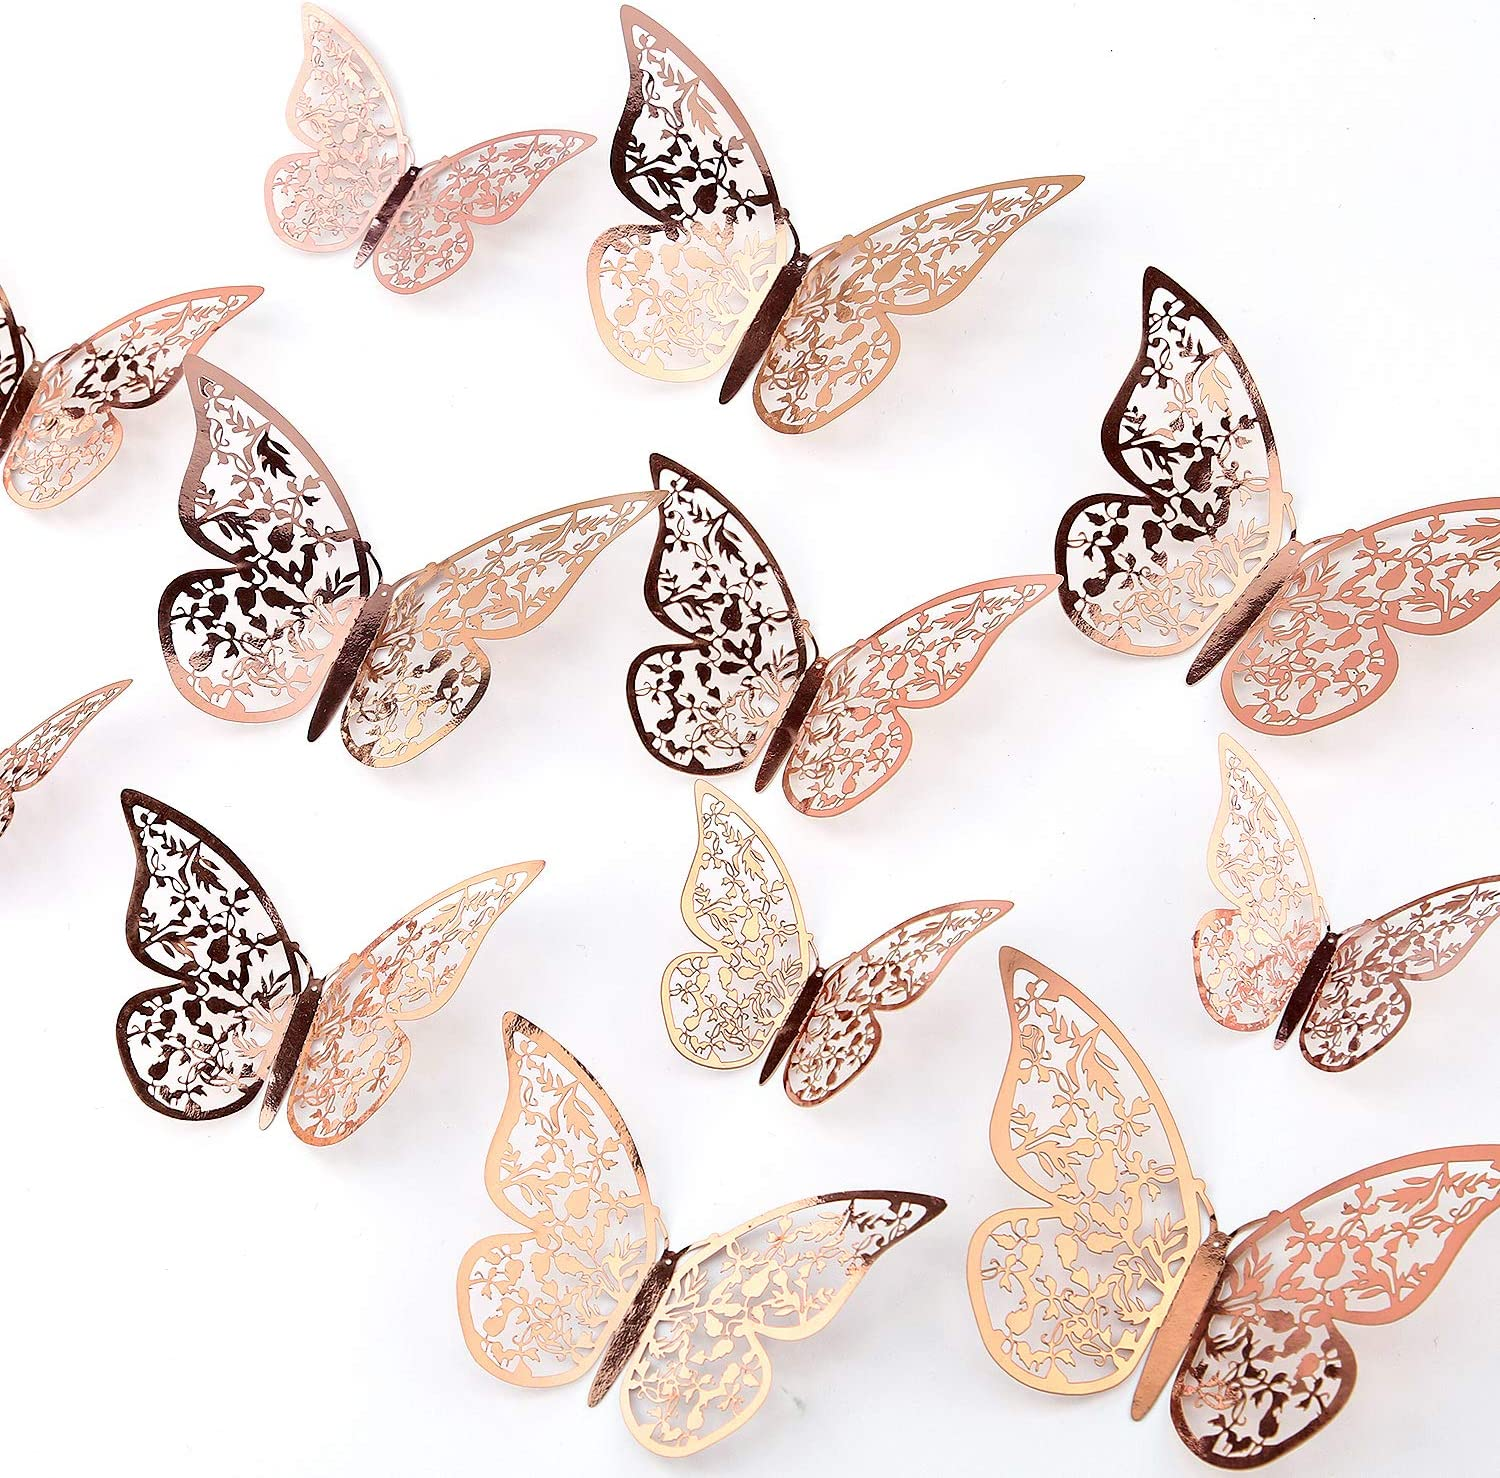 AIEX 24pcs 3D Butterfly Wall Stickers 3 Sizes Butterfly Wall Decals Room Wall Decoration for Bedroom Party Wedding Decors(Rose Gold)